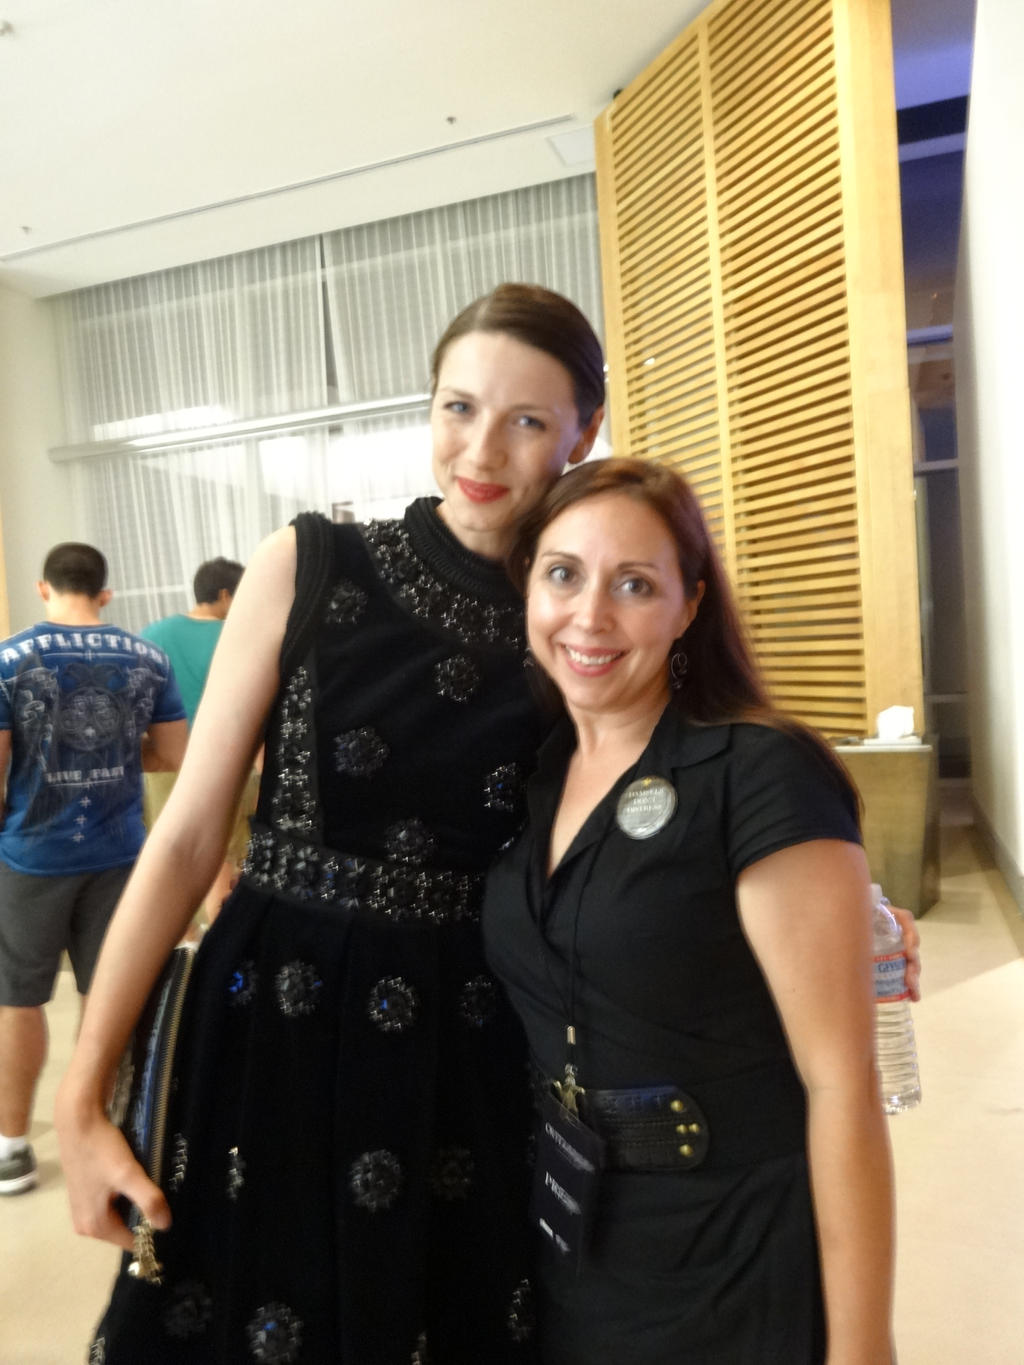 Caitriona Balfe and Myself by IreneAdler76